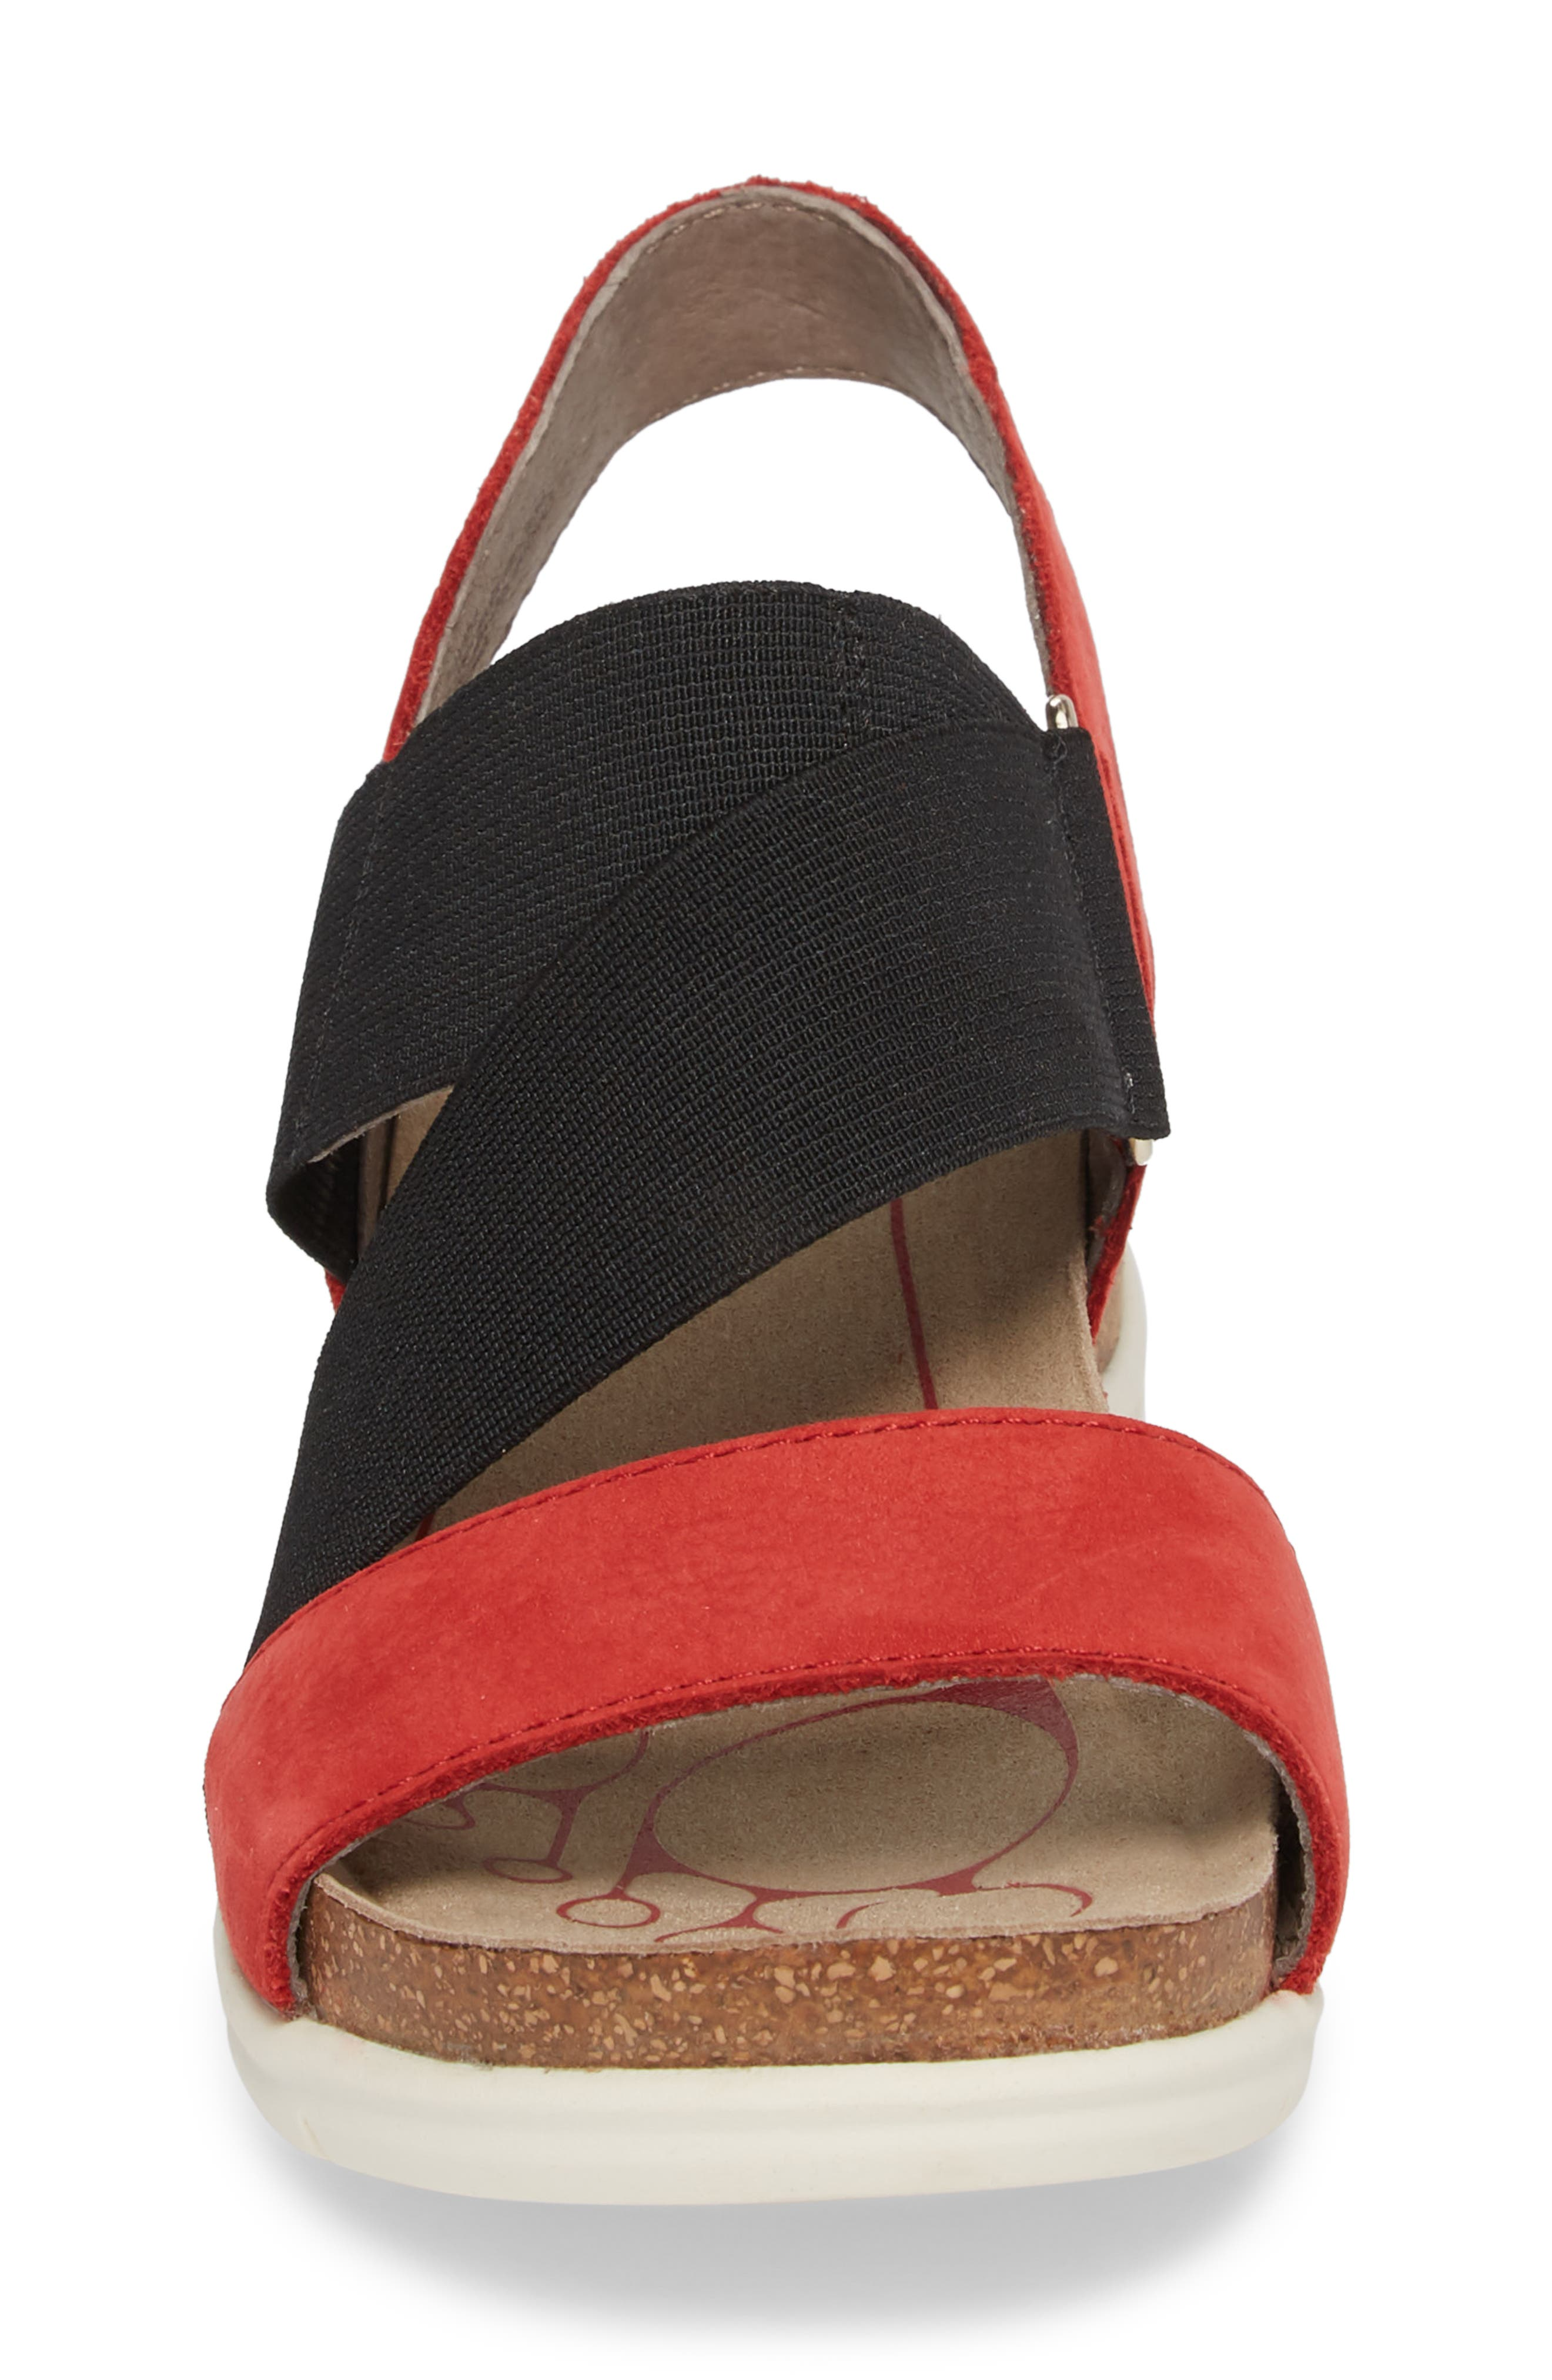 Paisley Wedge Sandal,                             Alternate thumbnail 4, color,                             Coral Leather